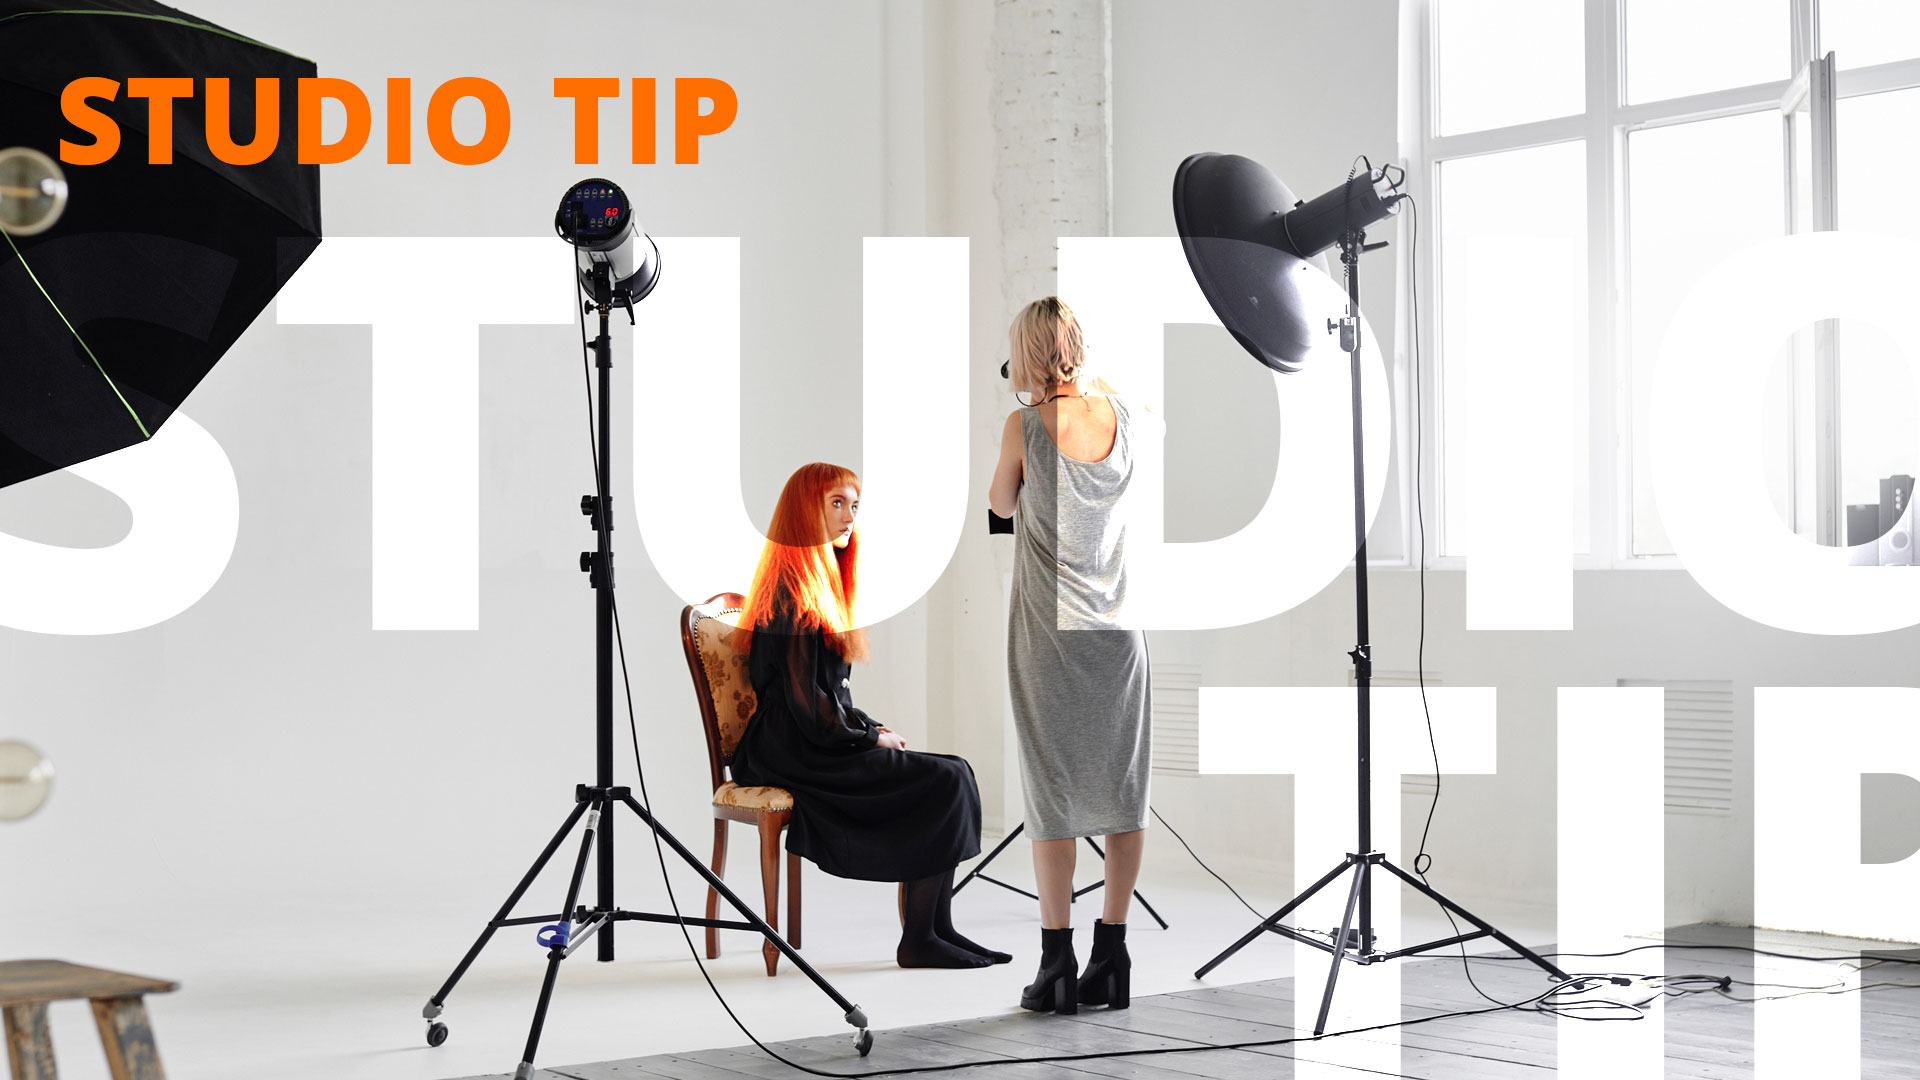 Studio Tip: Feathering the Light